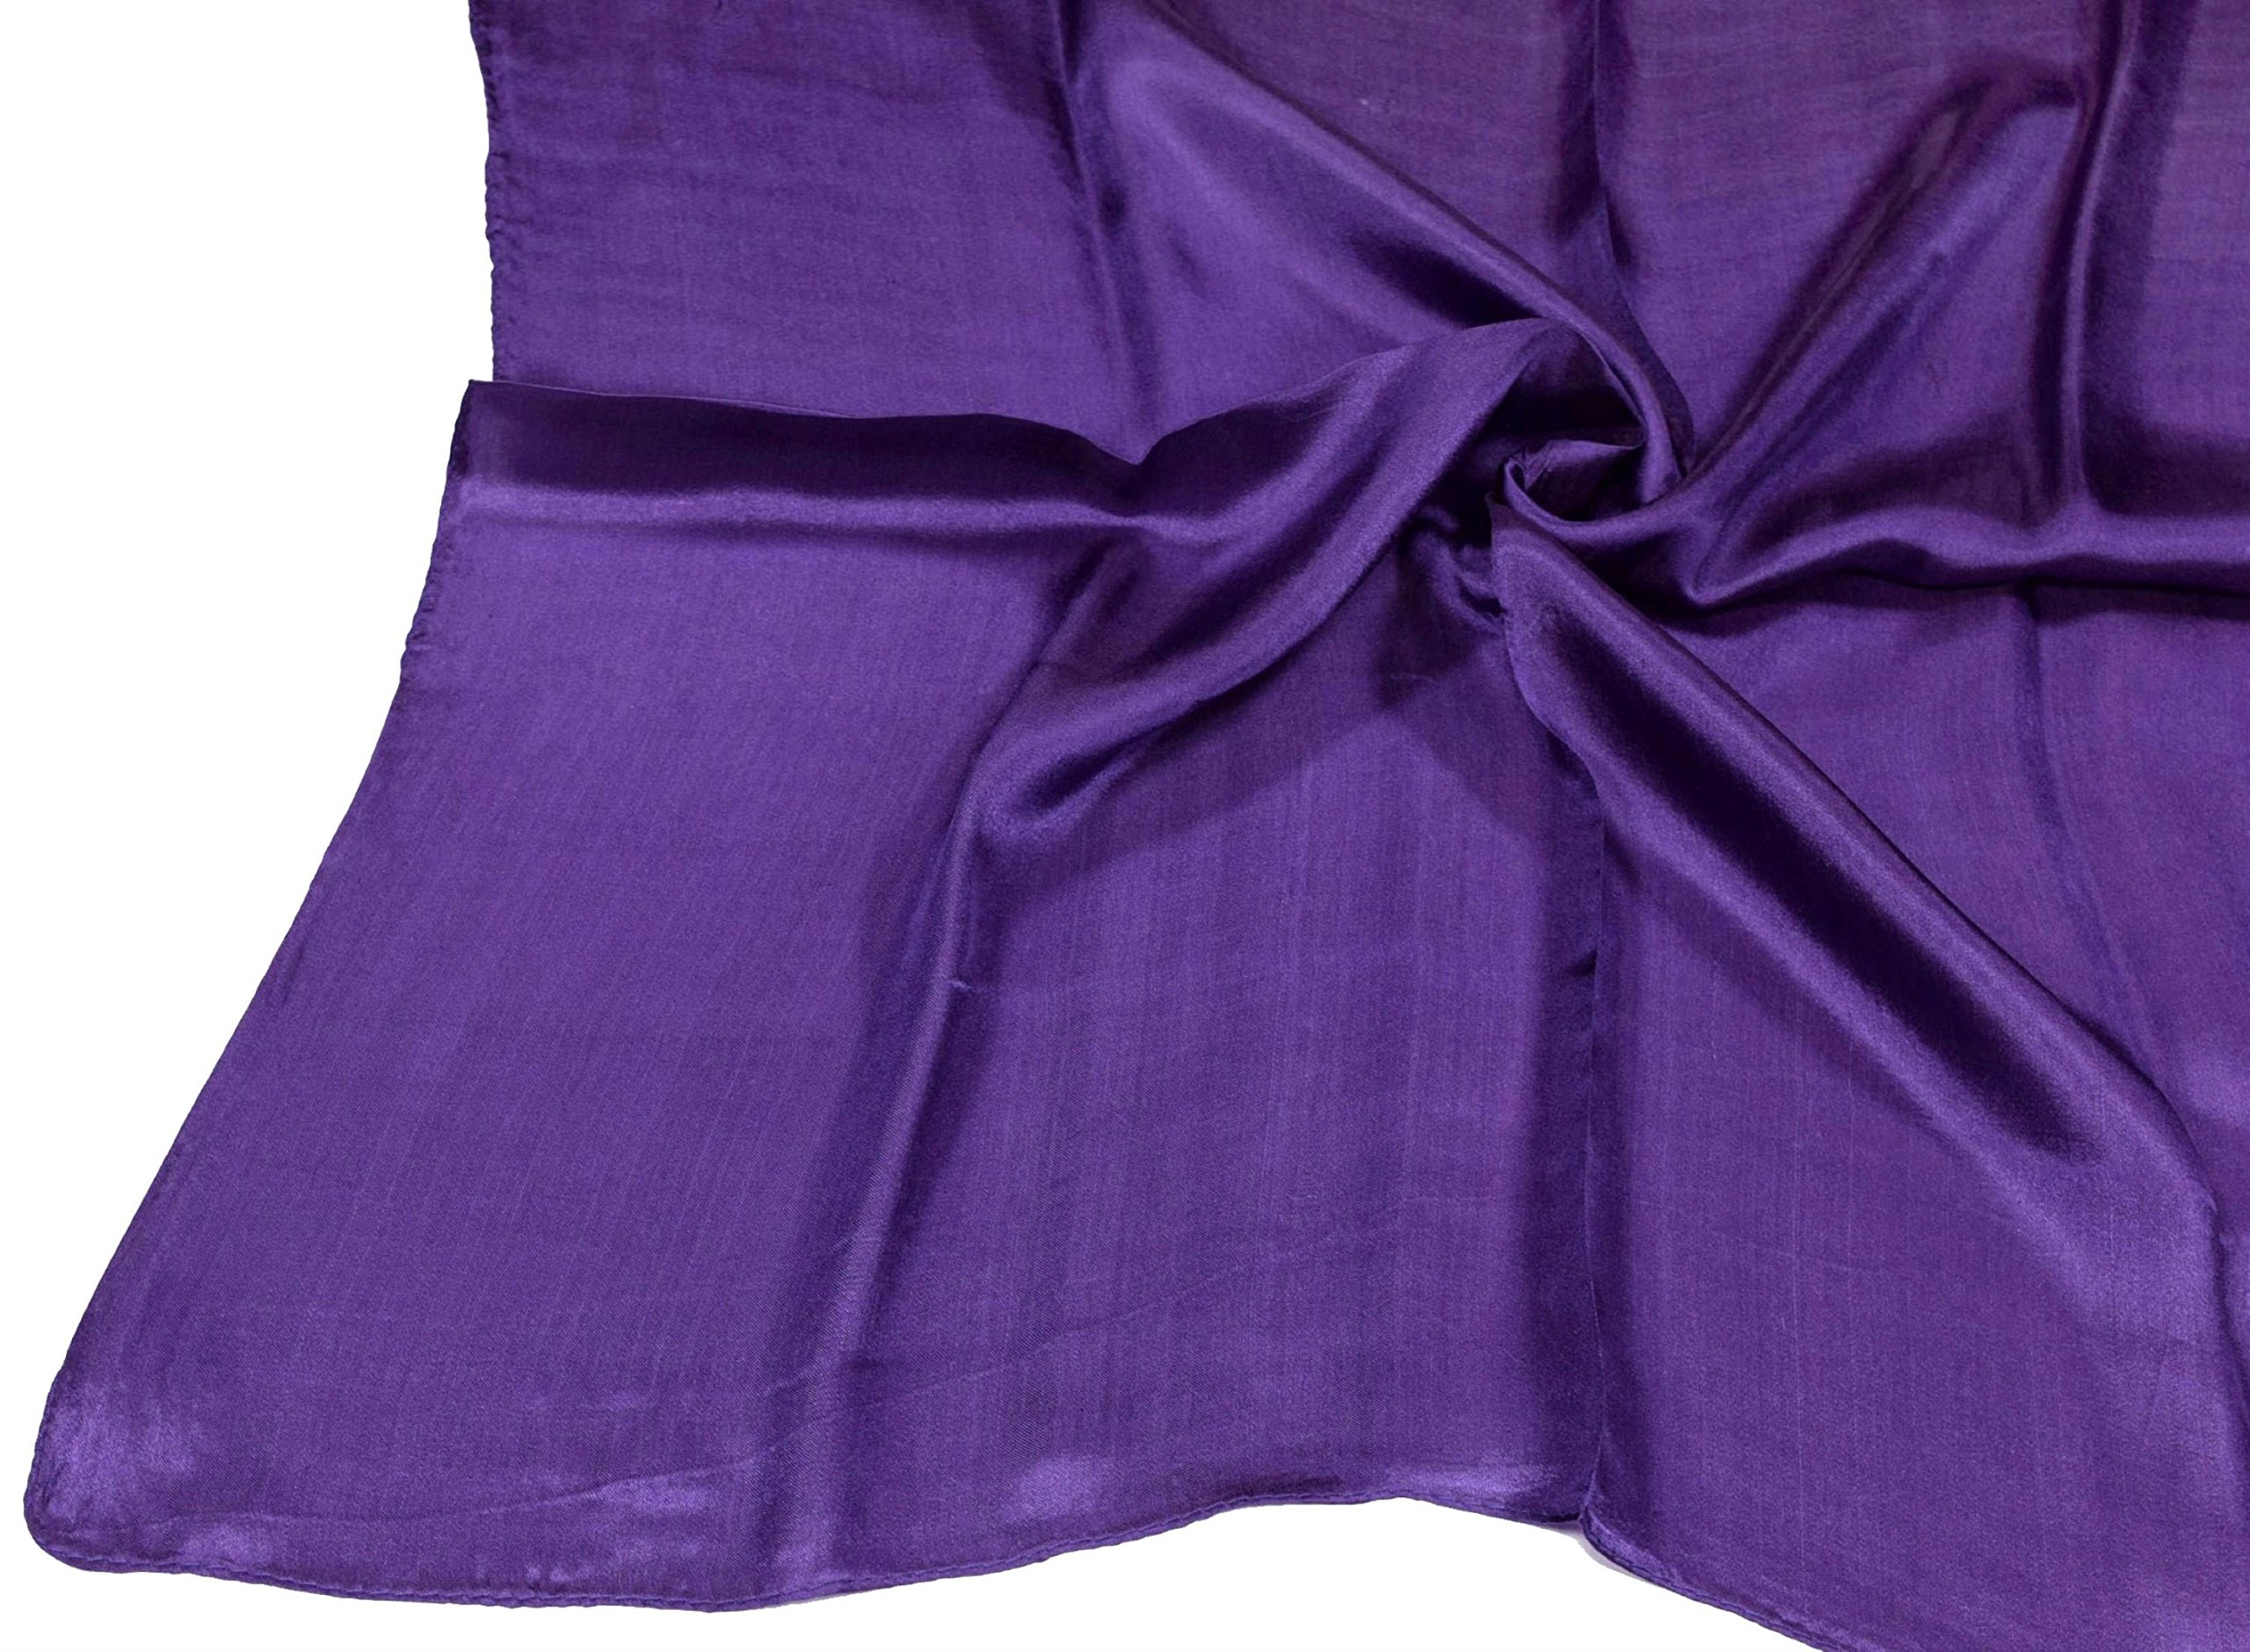 Deep Purple Small Fine Silk Square Scarf by Bees Knees Fashion (Image #5)